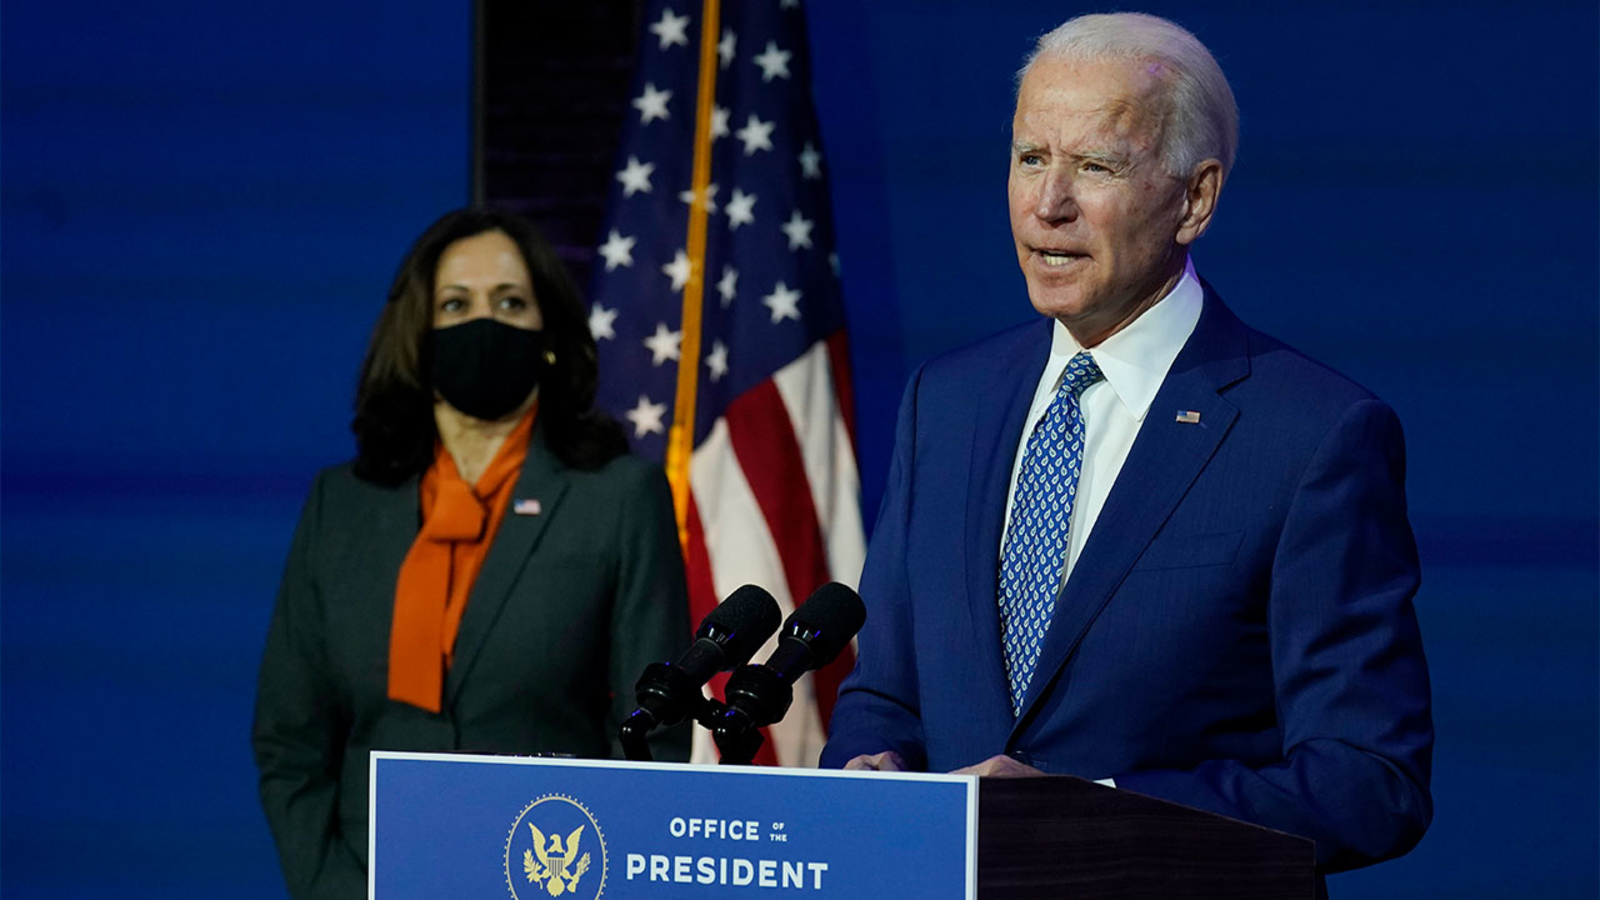 Safe harbor day: What to know about law that locks Congress into accepting Joe Biden's win